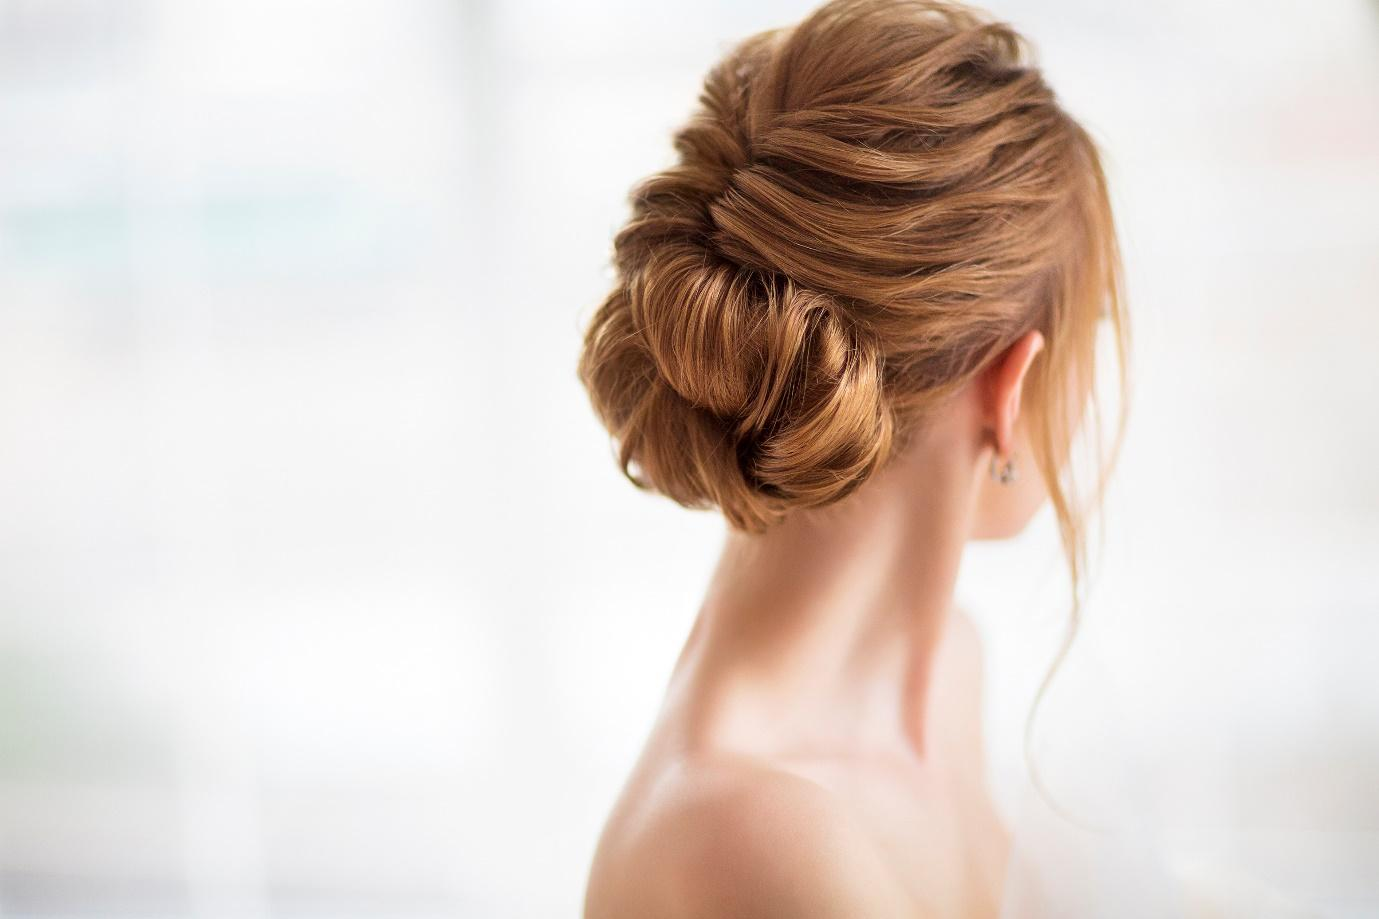 simply hair oil blog feature image